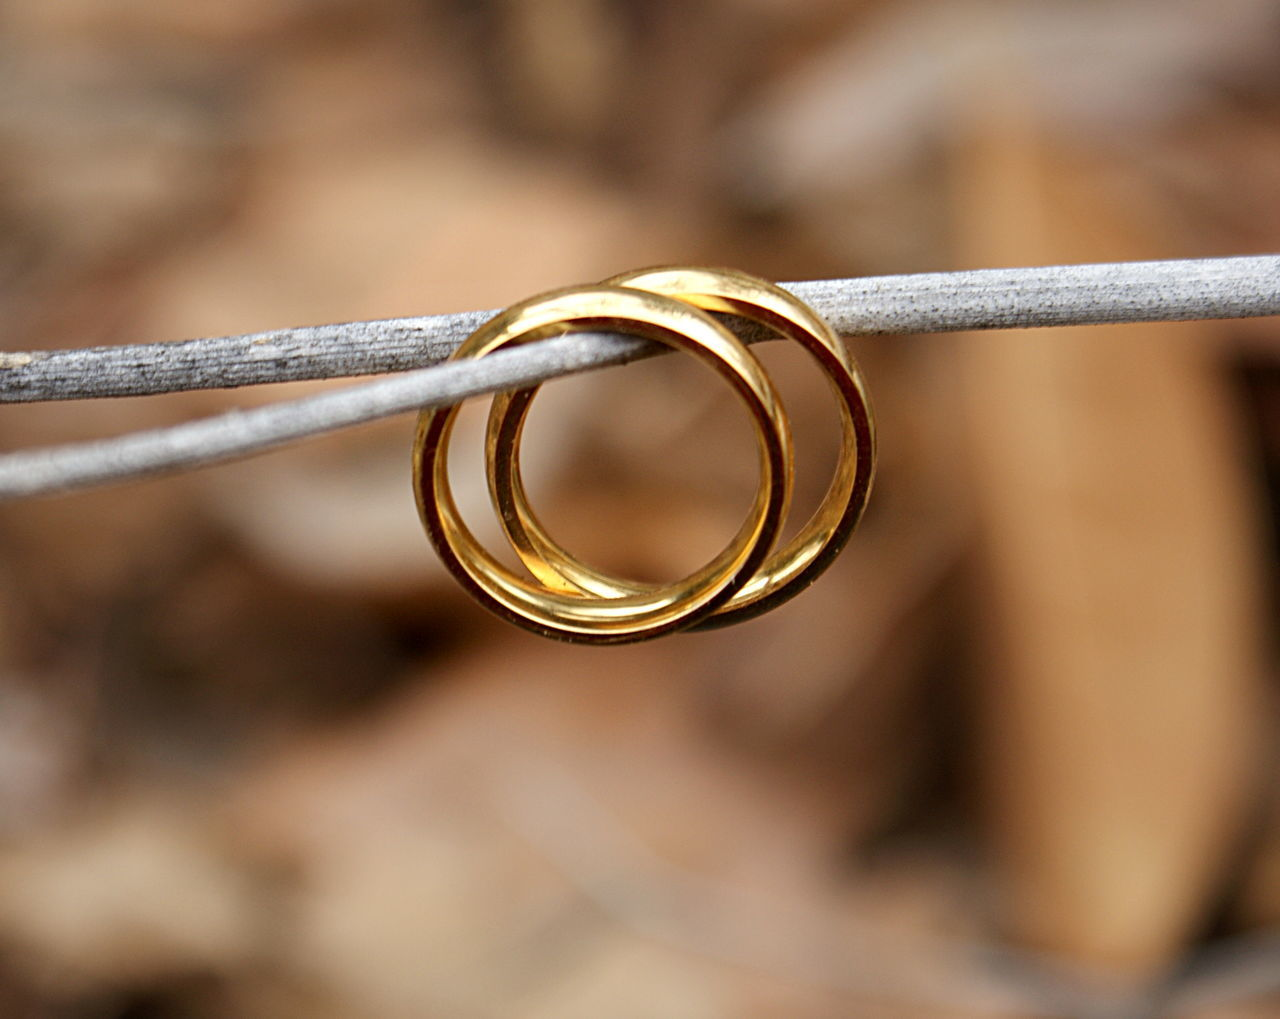 Golden wedding bands hang on a tree twig against a blurred background of fallen leaves. Blurred Background Brown Close-up Day Focus On Foreground Gold Gold Colored Golden Rings Leaves Life Events Love Marriage  Nature Neutral Colors No People Outdoors Ring Twigs And Branches Wedding Ring